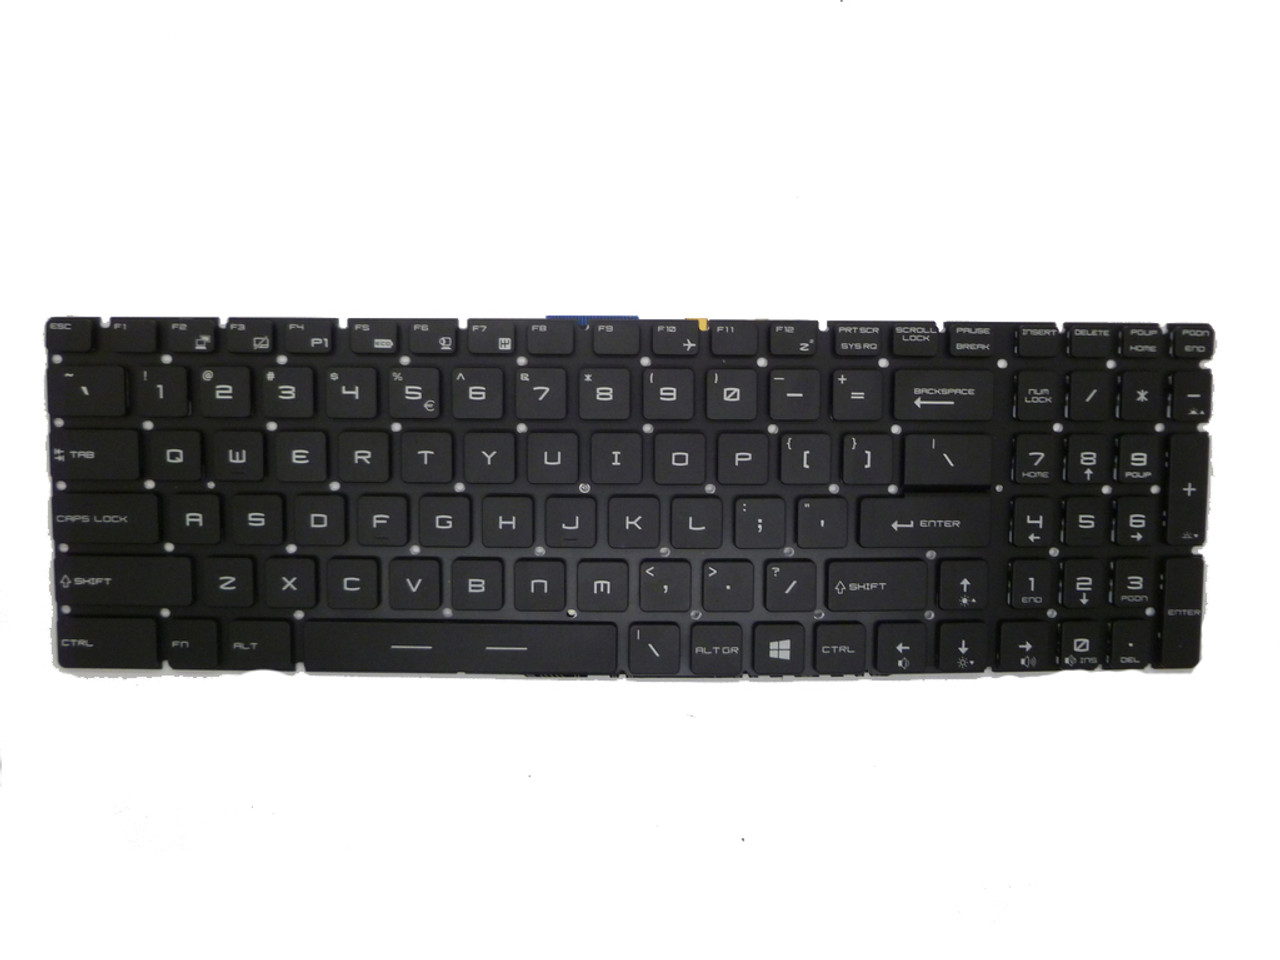 Laptop Keyboard for MSI GS70 2OD 6QC 6QE ONC 2PC 2PE 2QD 2QE 2QE16SR51 2QE16SR51R 2QE16SR51S Spain SP with Backlit